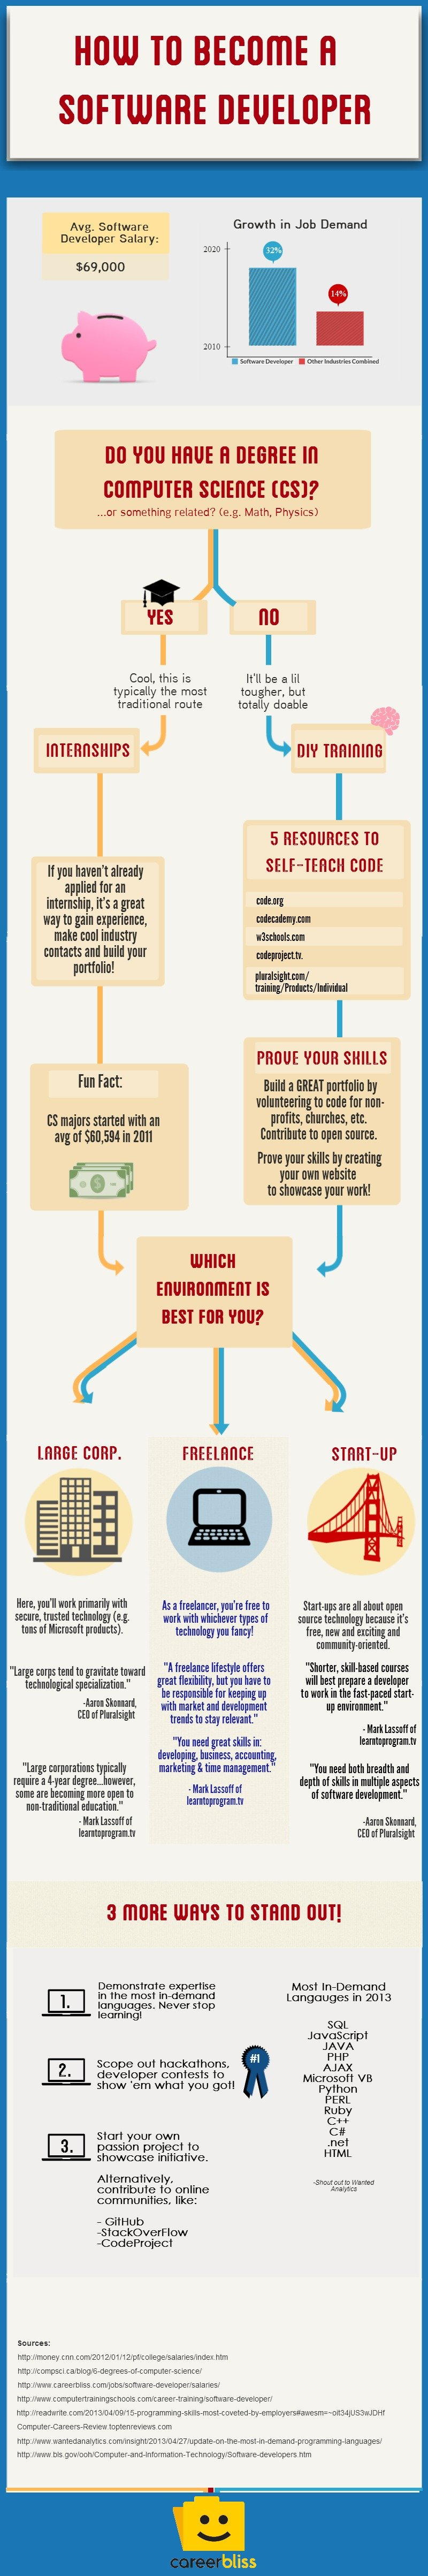 How To Become A Software Developer Infographic